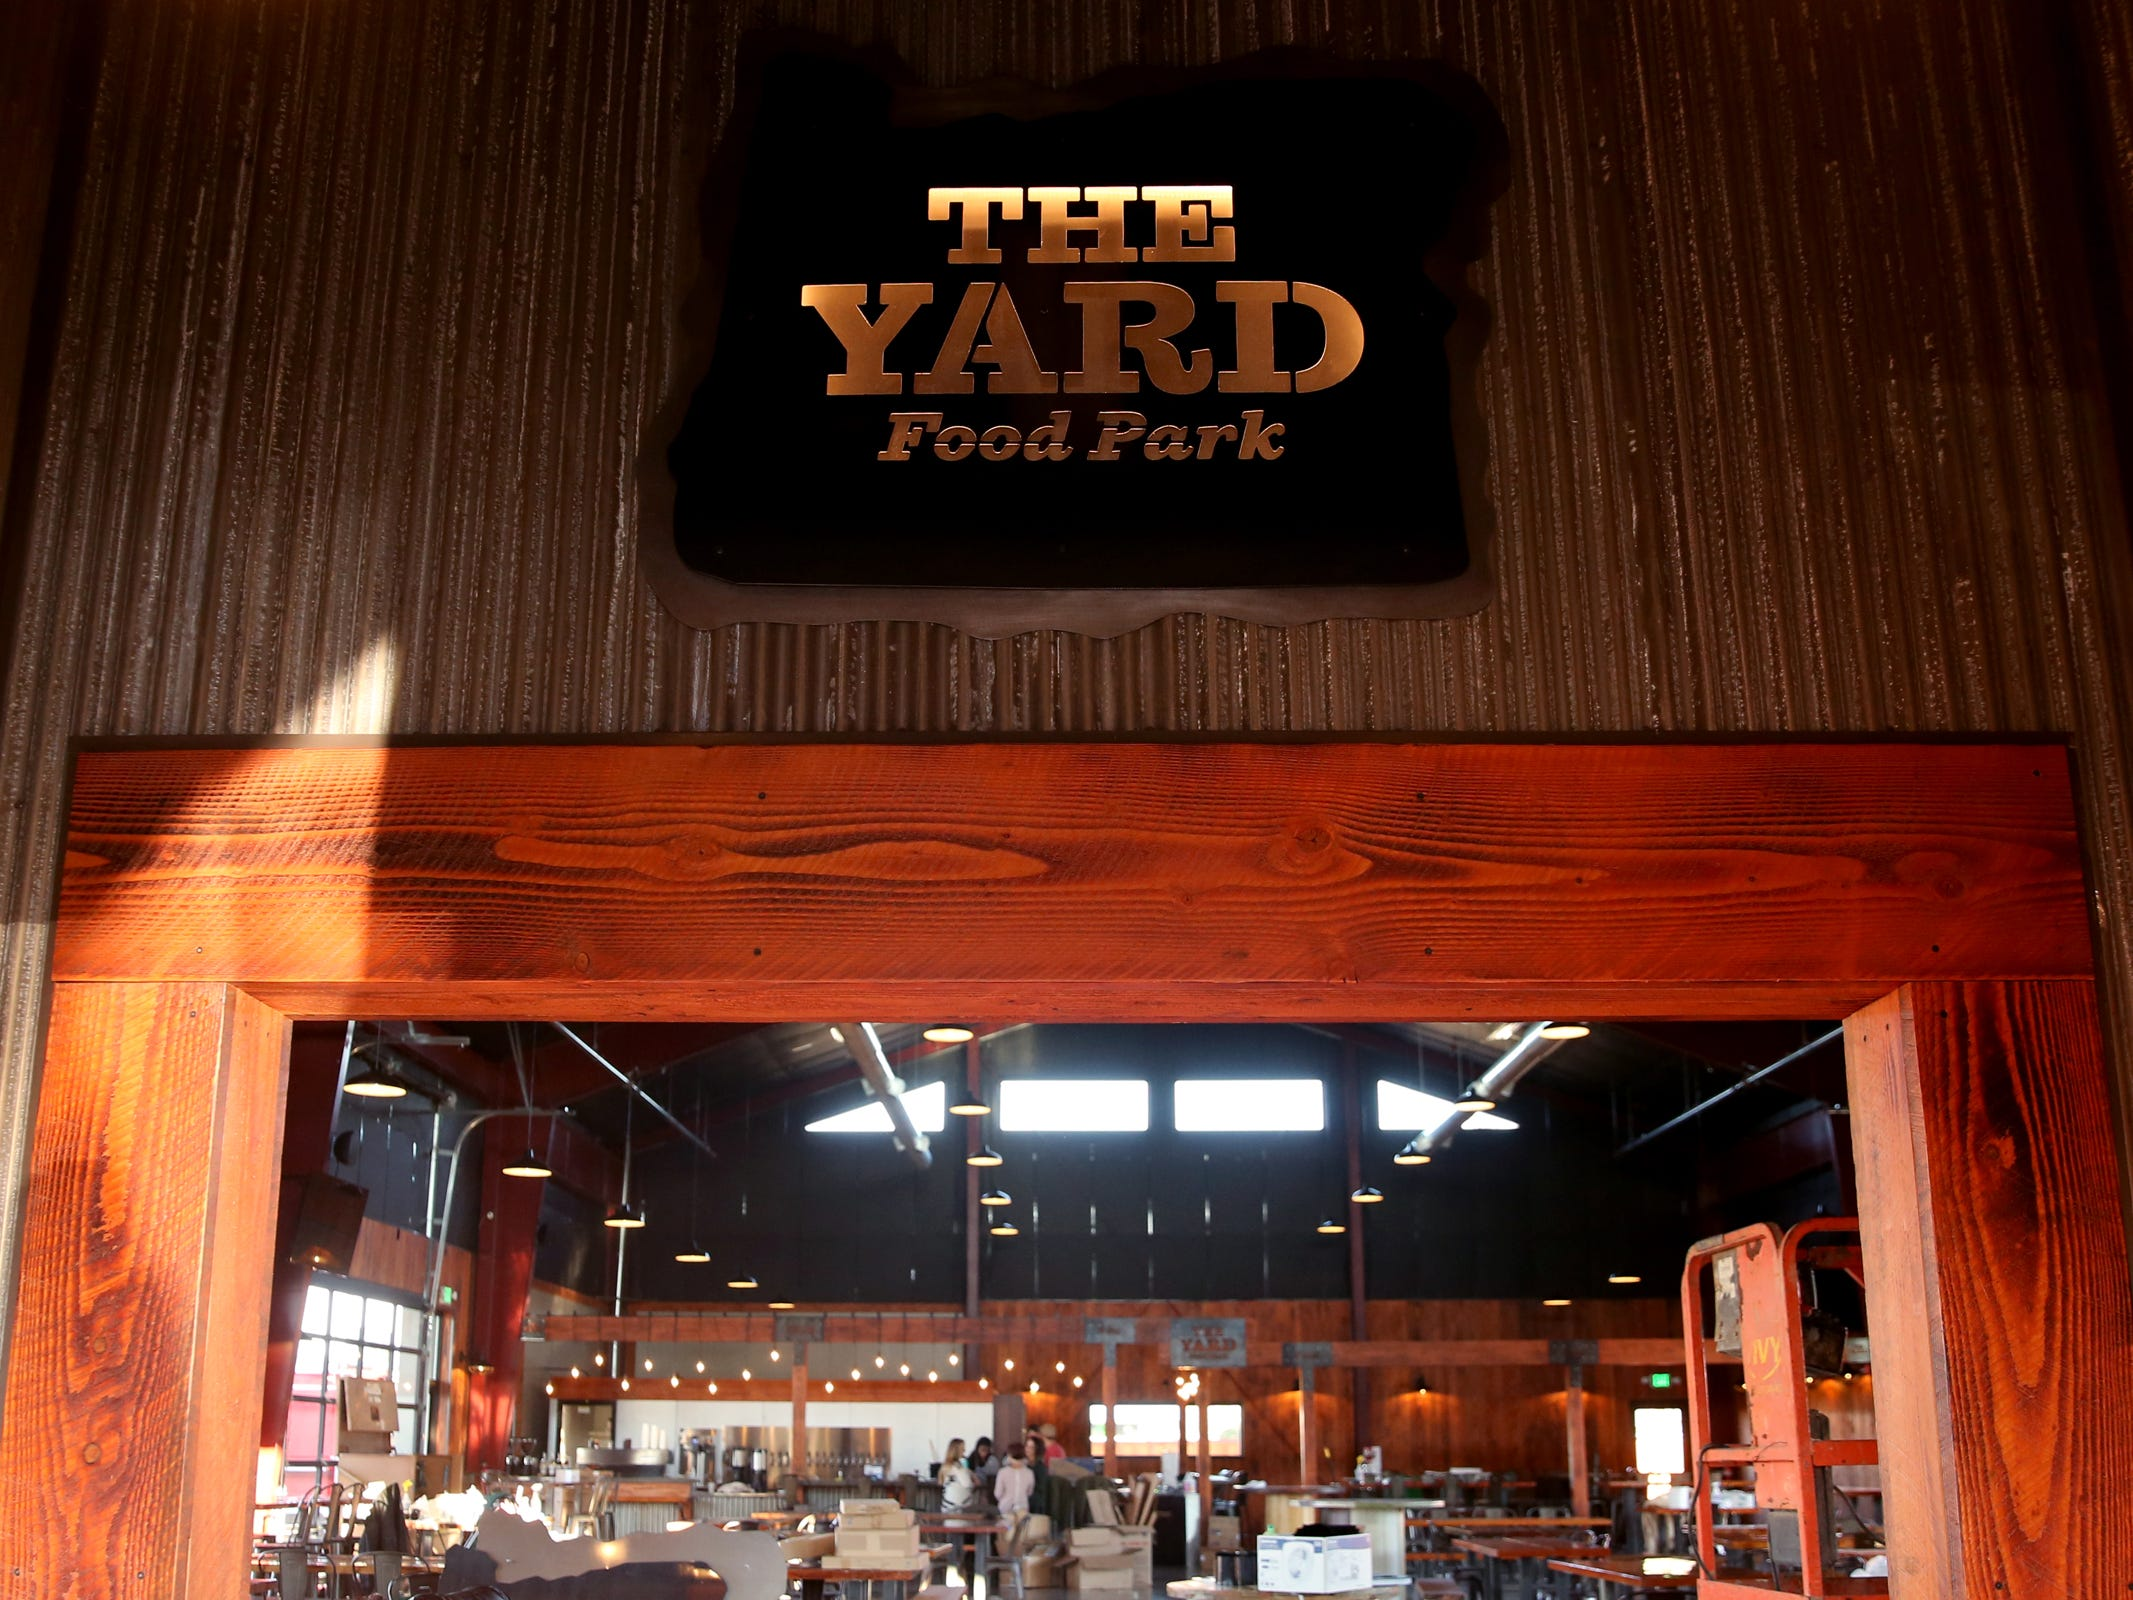 The Yard Food Park in Salem on Wednesday, Dec. 5, 2018. When it opens, The Yard will essentially be part coffee shop, part bar, part event space, and part food truck food court.